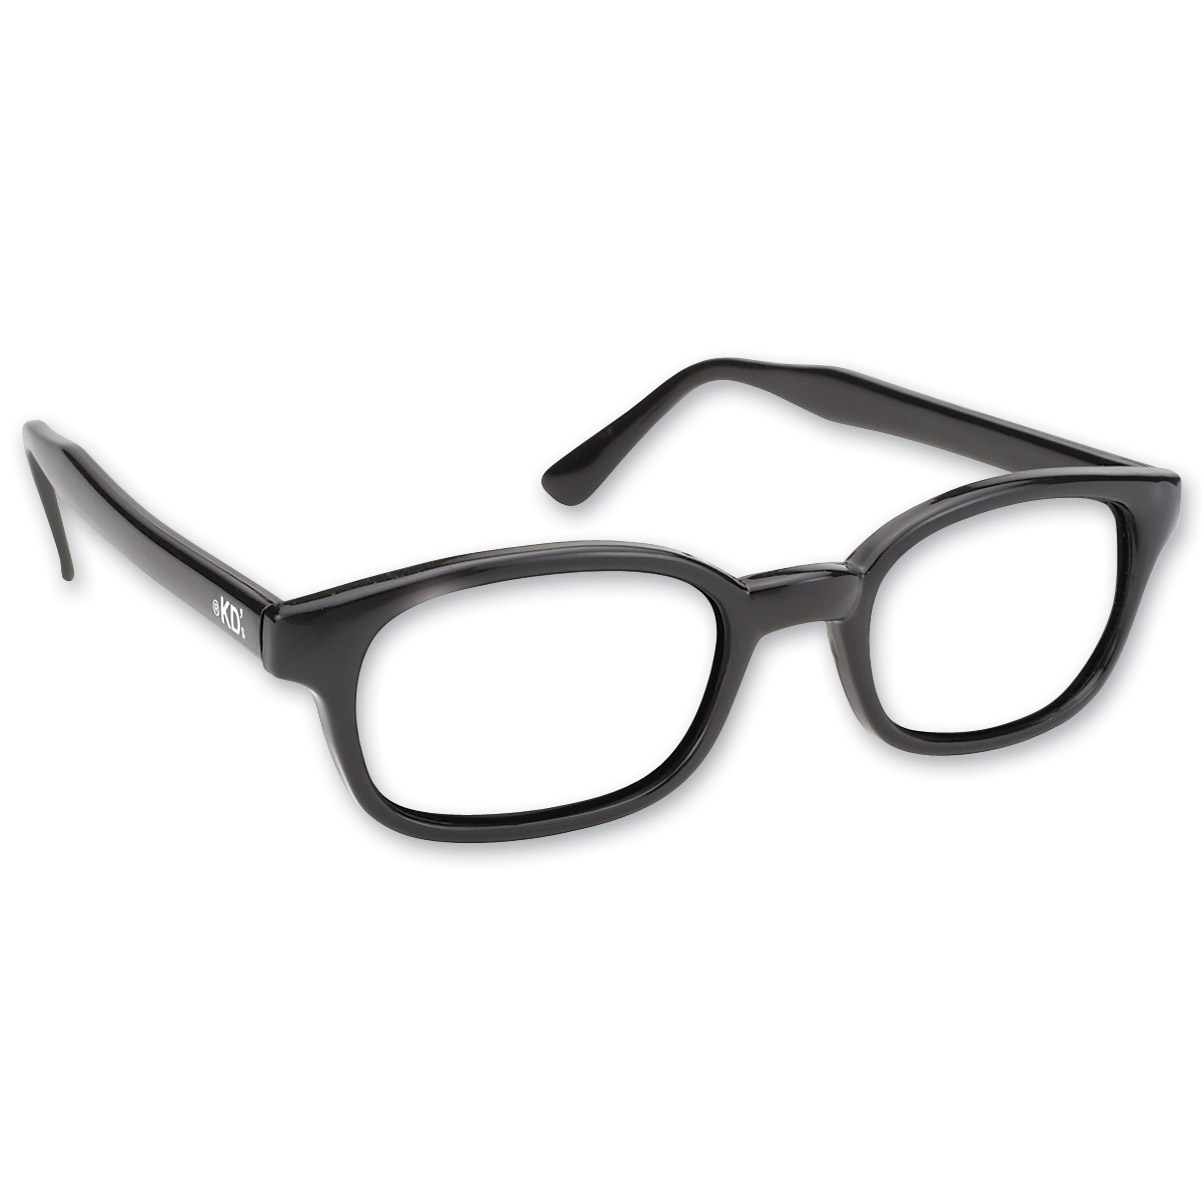 Original KD\'s Sunglasses-Black Frame with Clear Lens | JPCycles.com